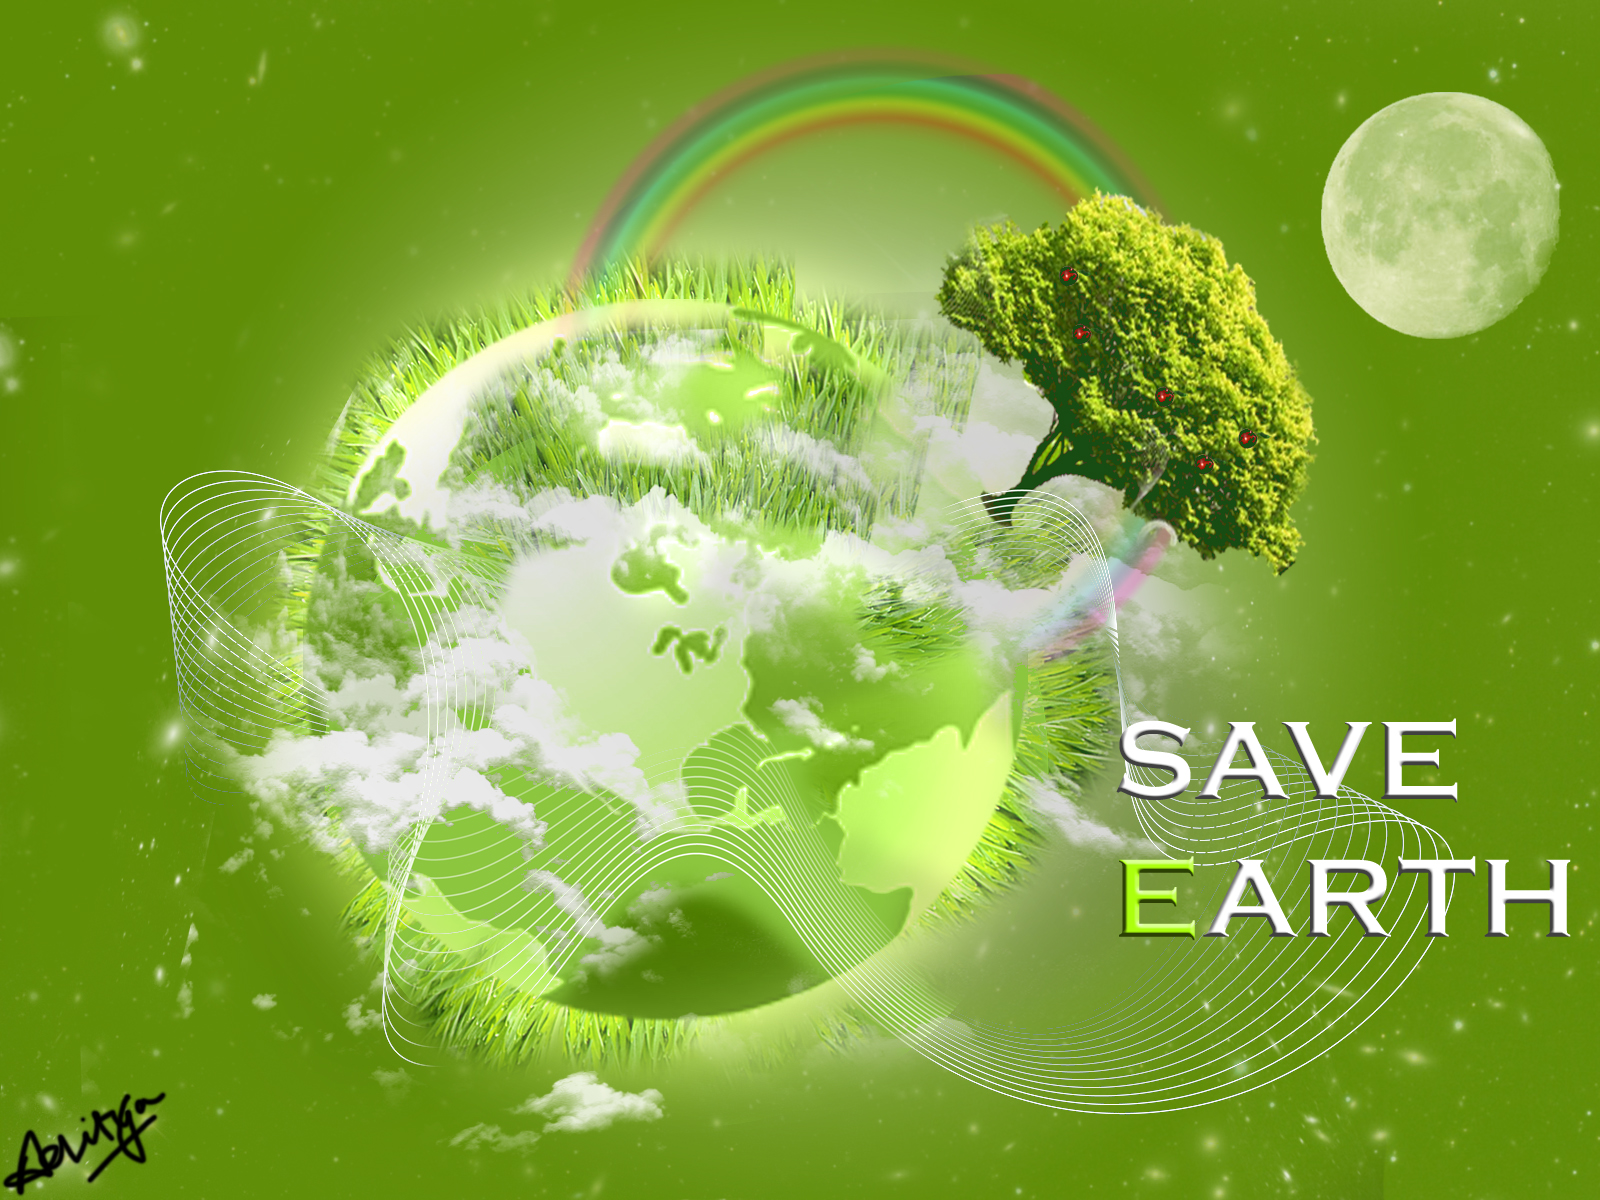 essay about save mother earth through green energy Report abuse home opinion environment save our mother earth your homeshift to green energy like solar and wind to to save mother earth.